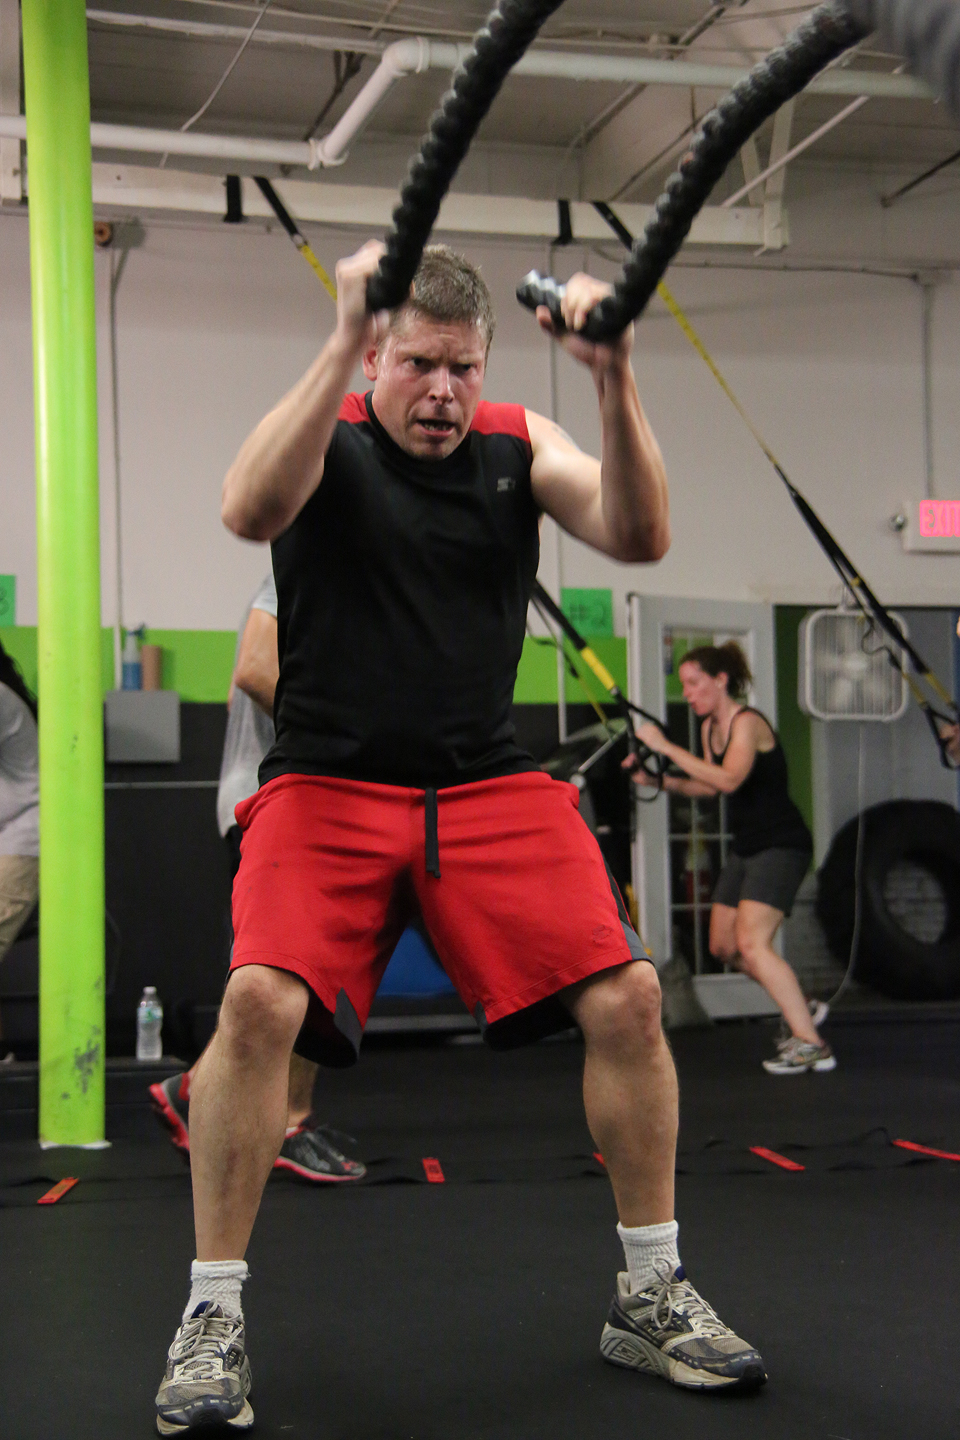 easthampton_ma_gym_member_erik_doing_group_fitness_training_and_boot_camp.jpg